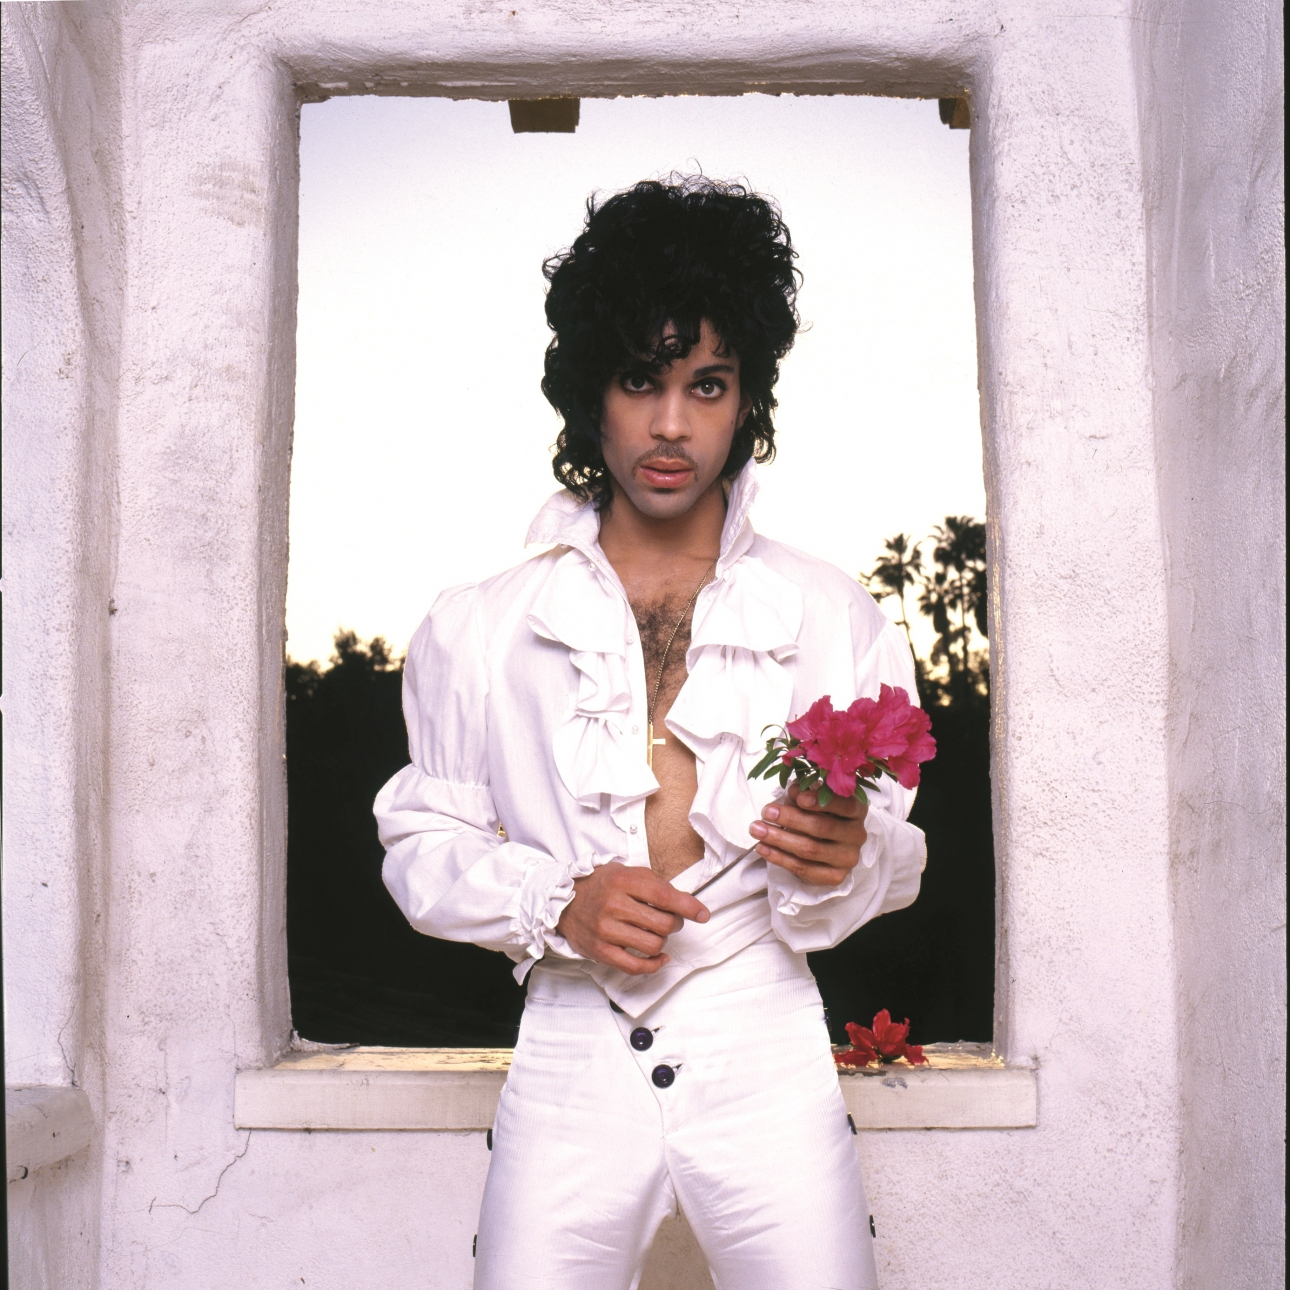 """Hear """"Electric Intercourse"""", a stunning unreleased track from Prince's Purple Rain sessions"""